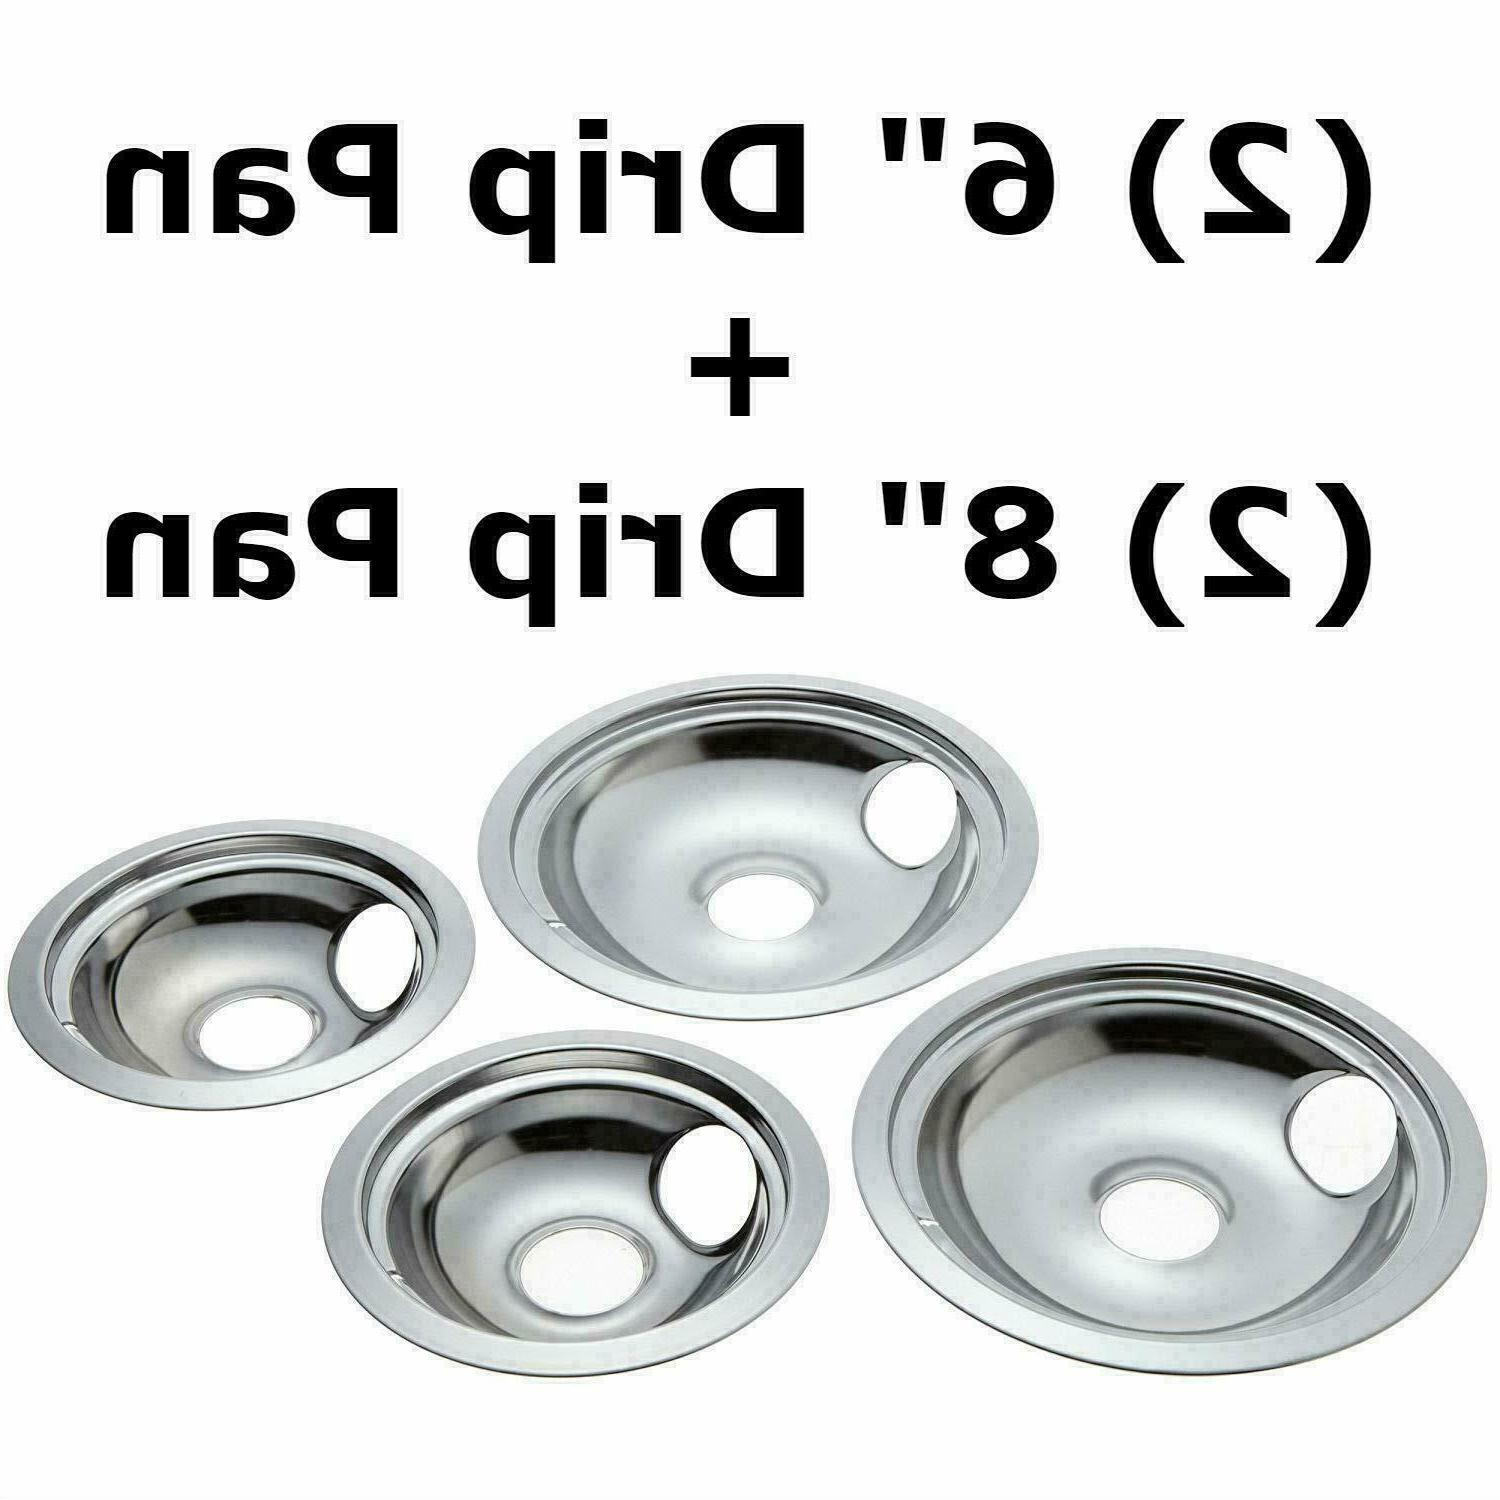 Stanco 4 Pack GE/Hotpoint Electric Range Chrome Reflector Bo